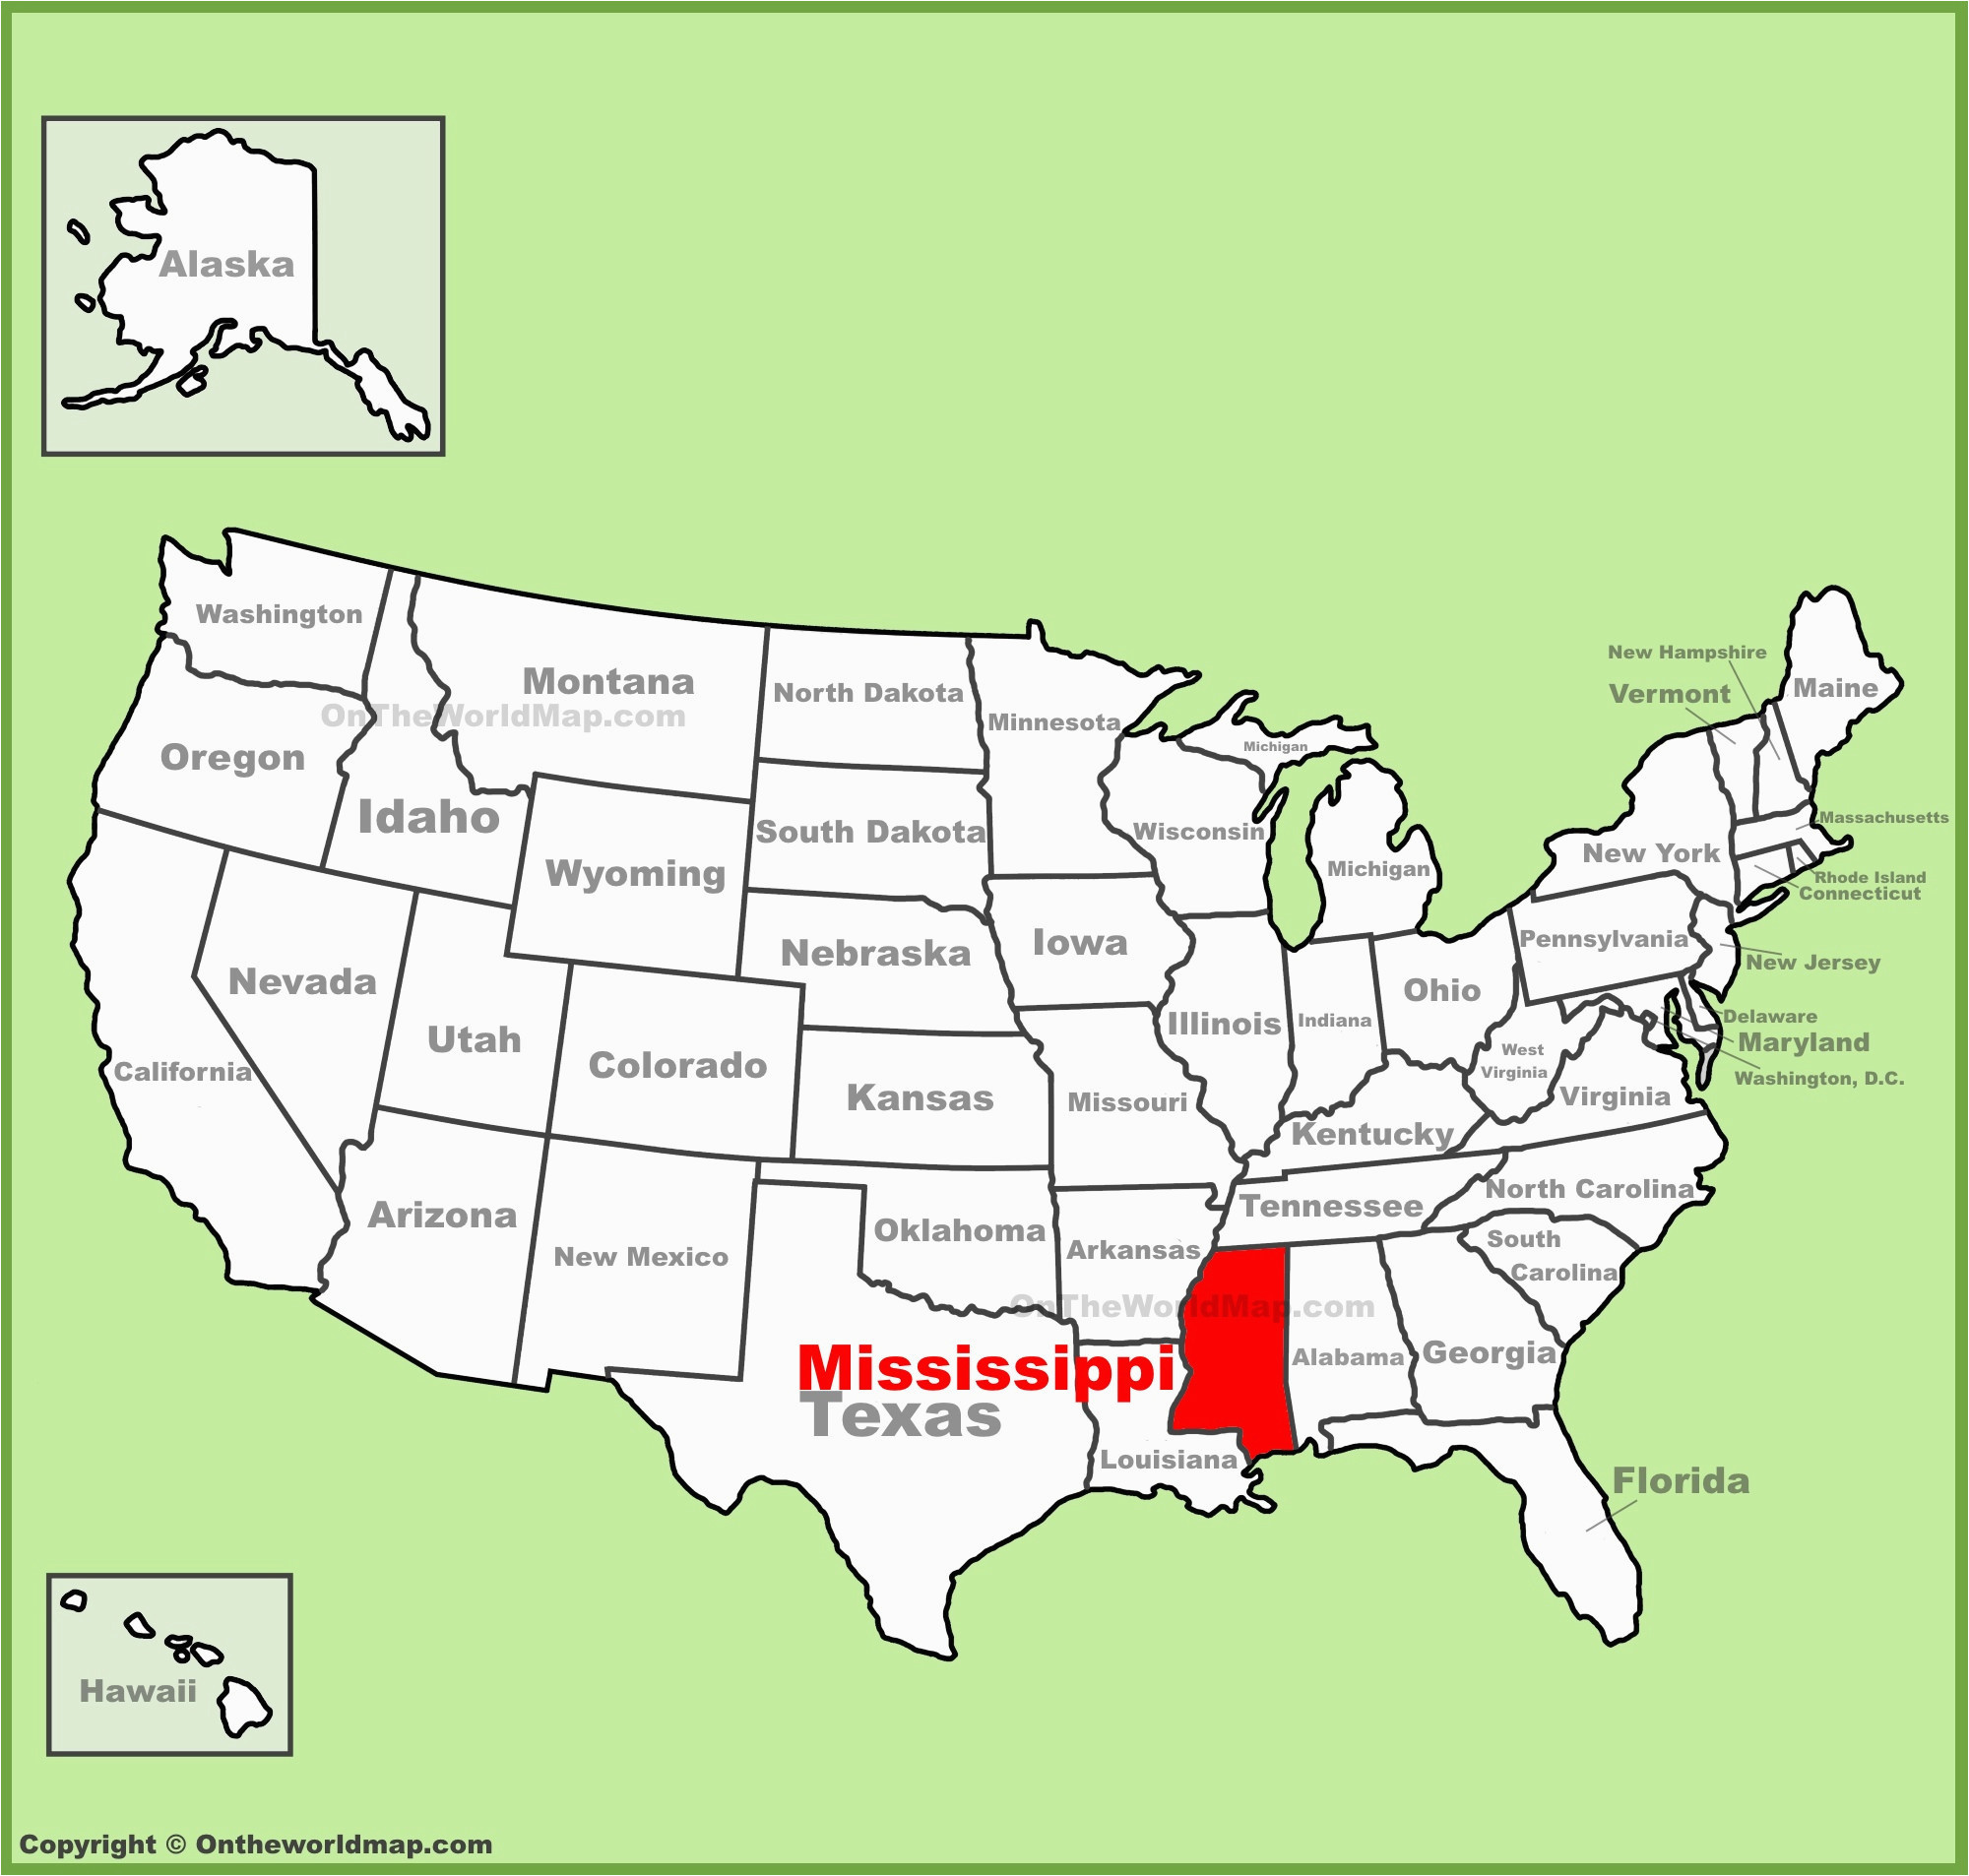 Tennessee Casinos Map Nashville Tennessee On Us Map Best Of Mississippi State Maps Usa